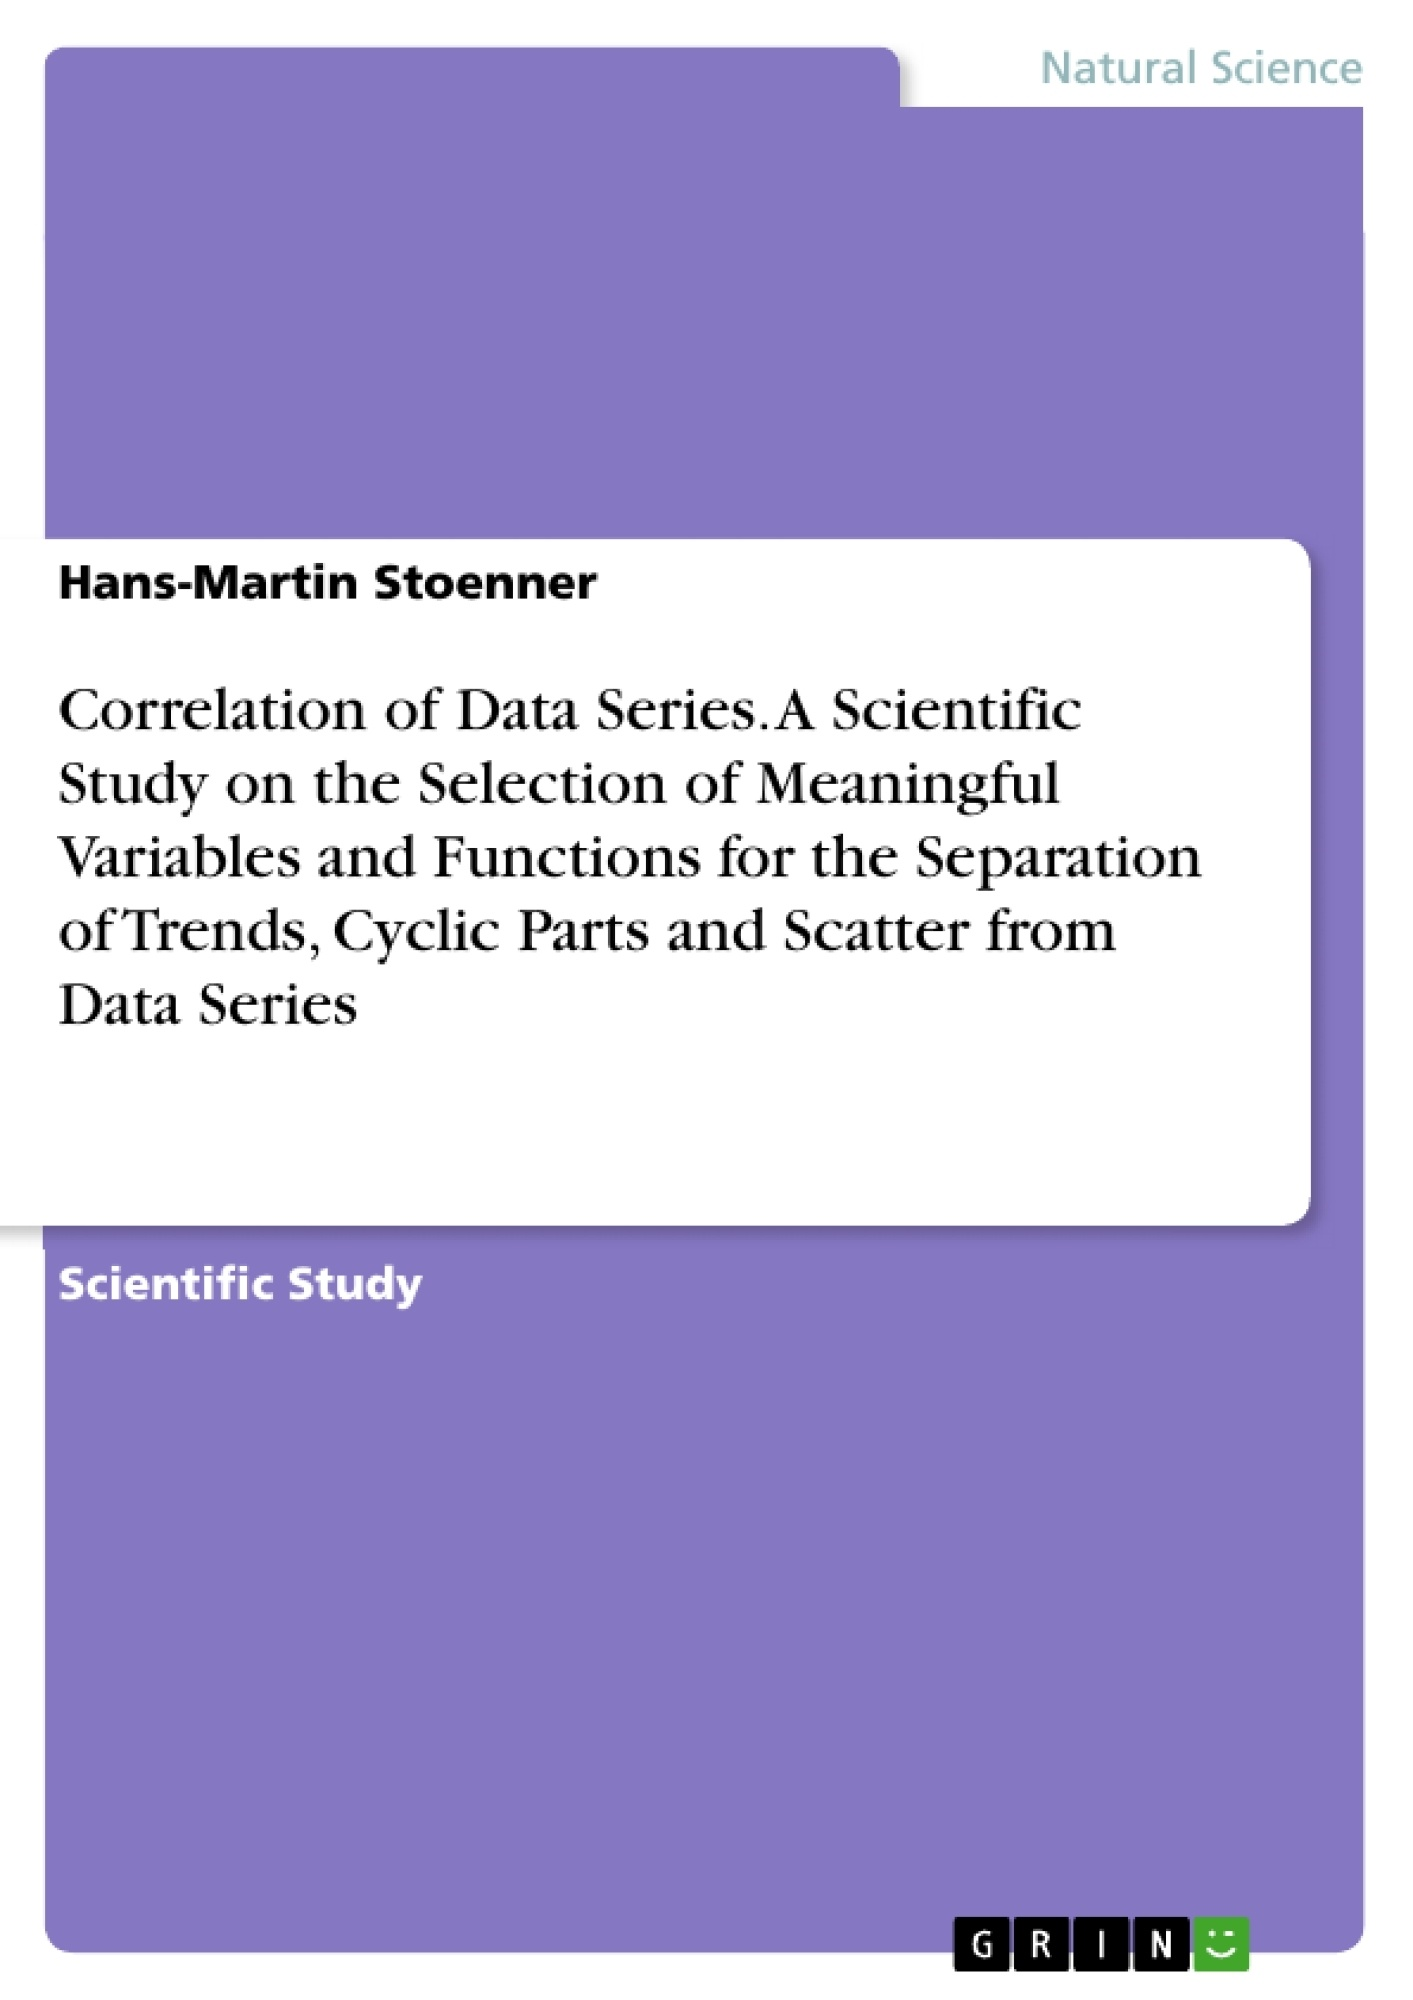 Title: Correlation of Data Series. A Scientific Study on the Selection of Meaningful Variables and Functions for the Separation of Trends, Cyclic Parts and Scatter from Data Series